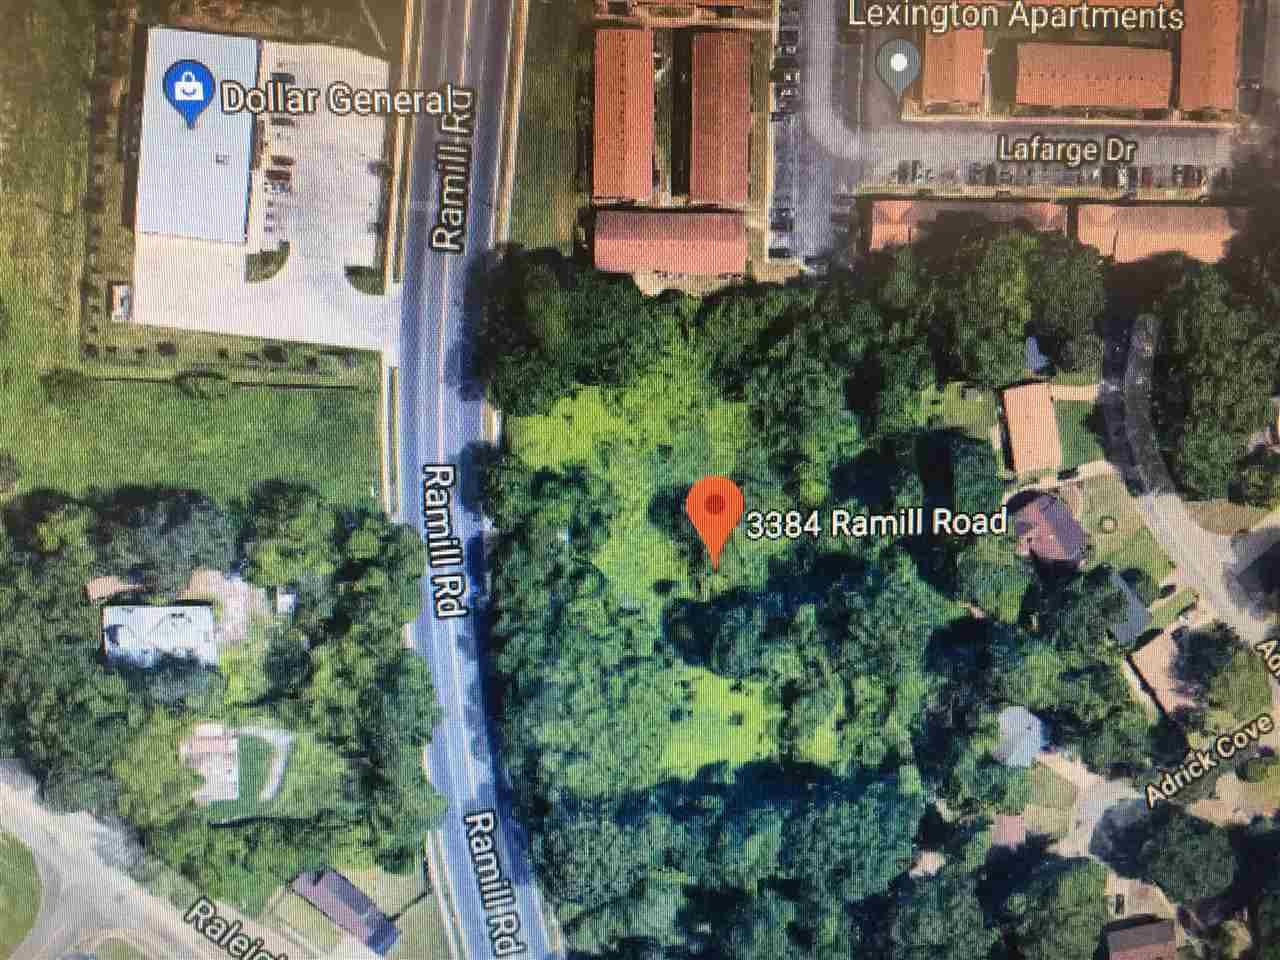 2.43 acre vacant lot currently zoned R-8.  Currently zoned residential but great potential for commercial usage.